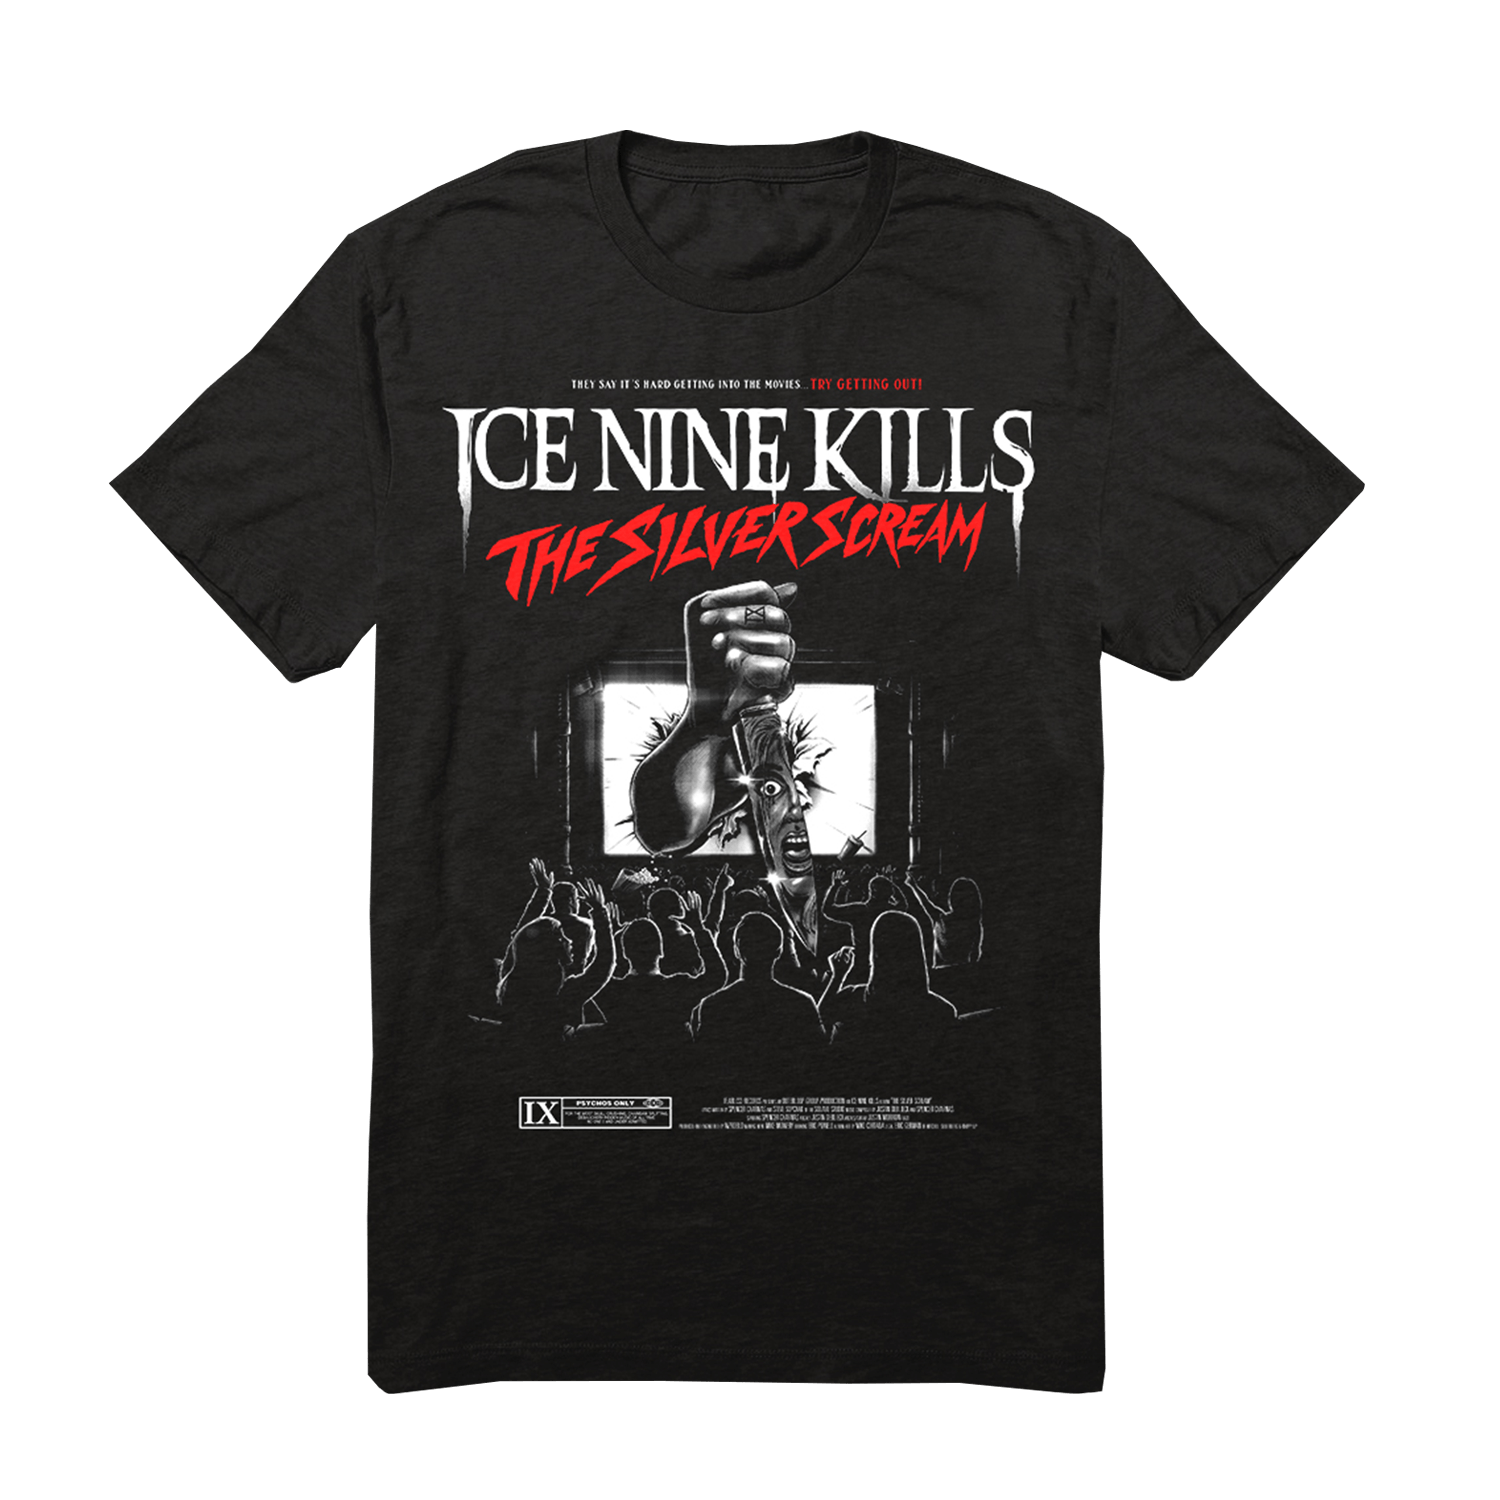 Ice Nine Kills - The Silver Scream Album Tee